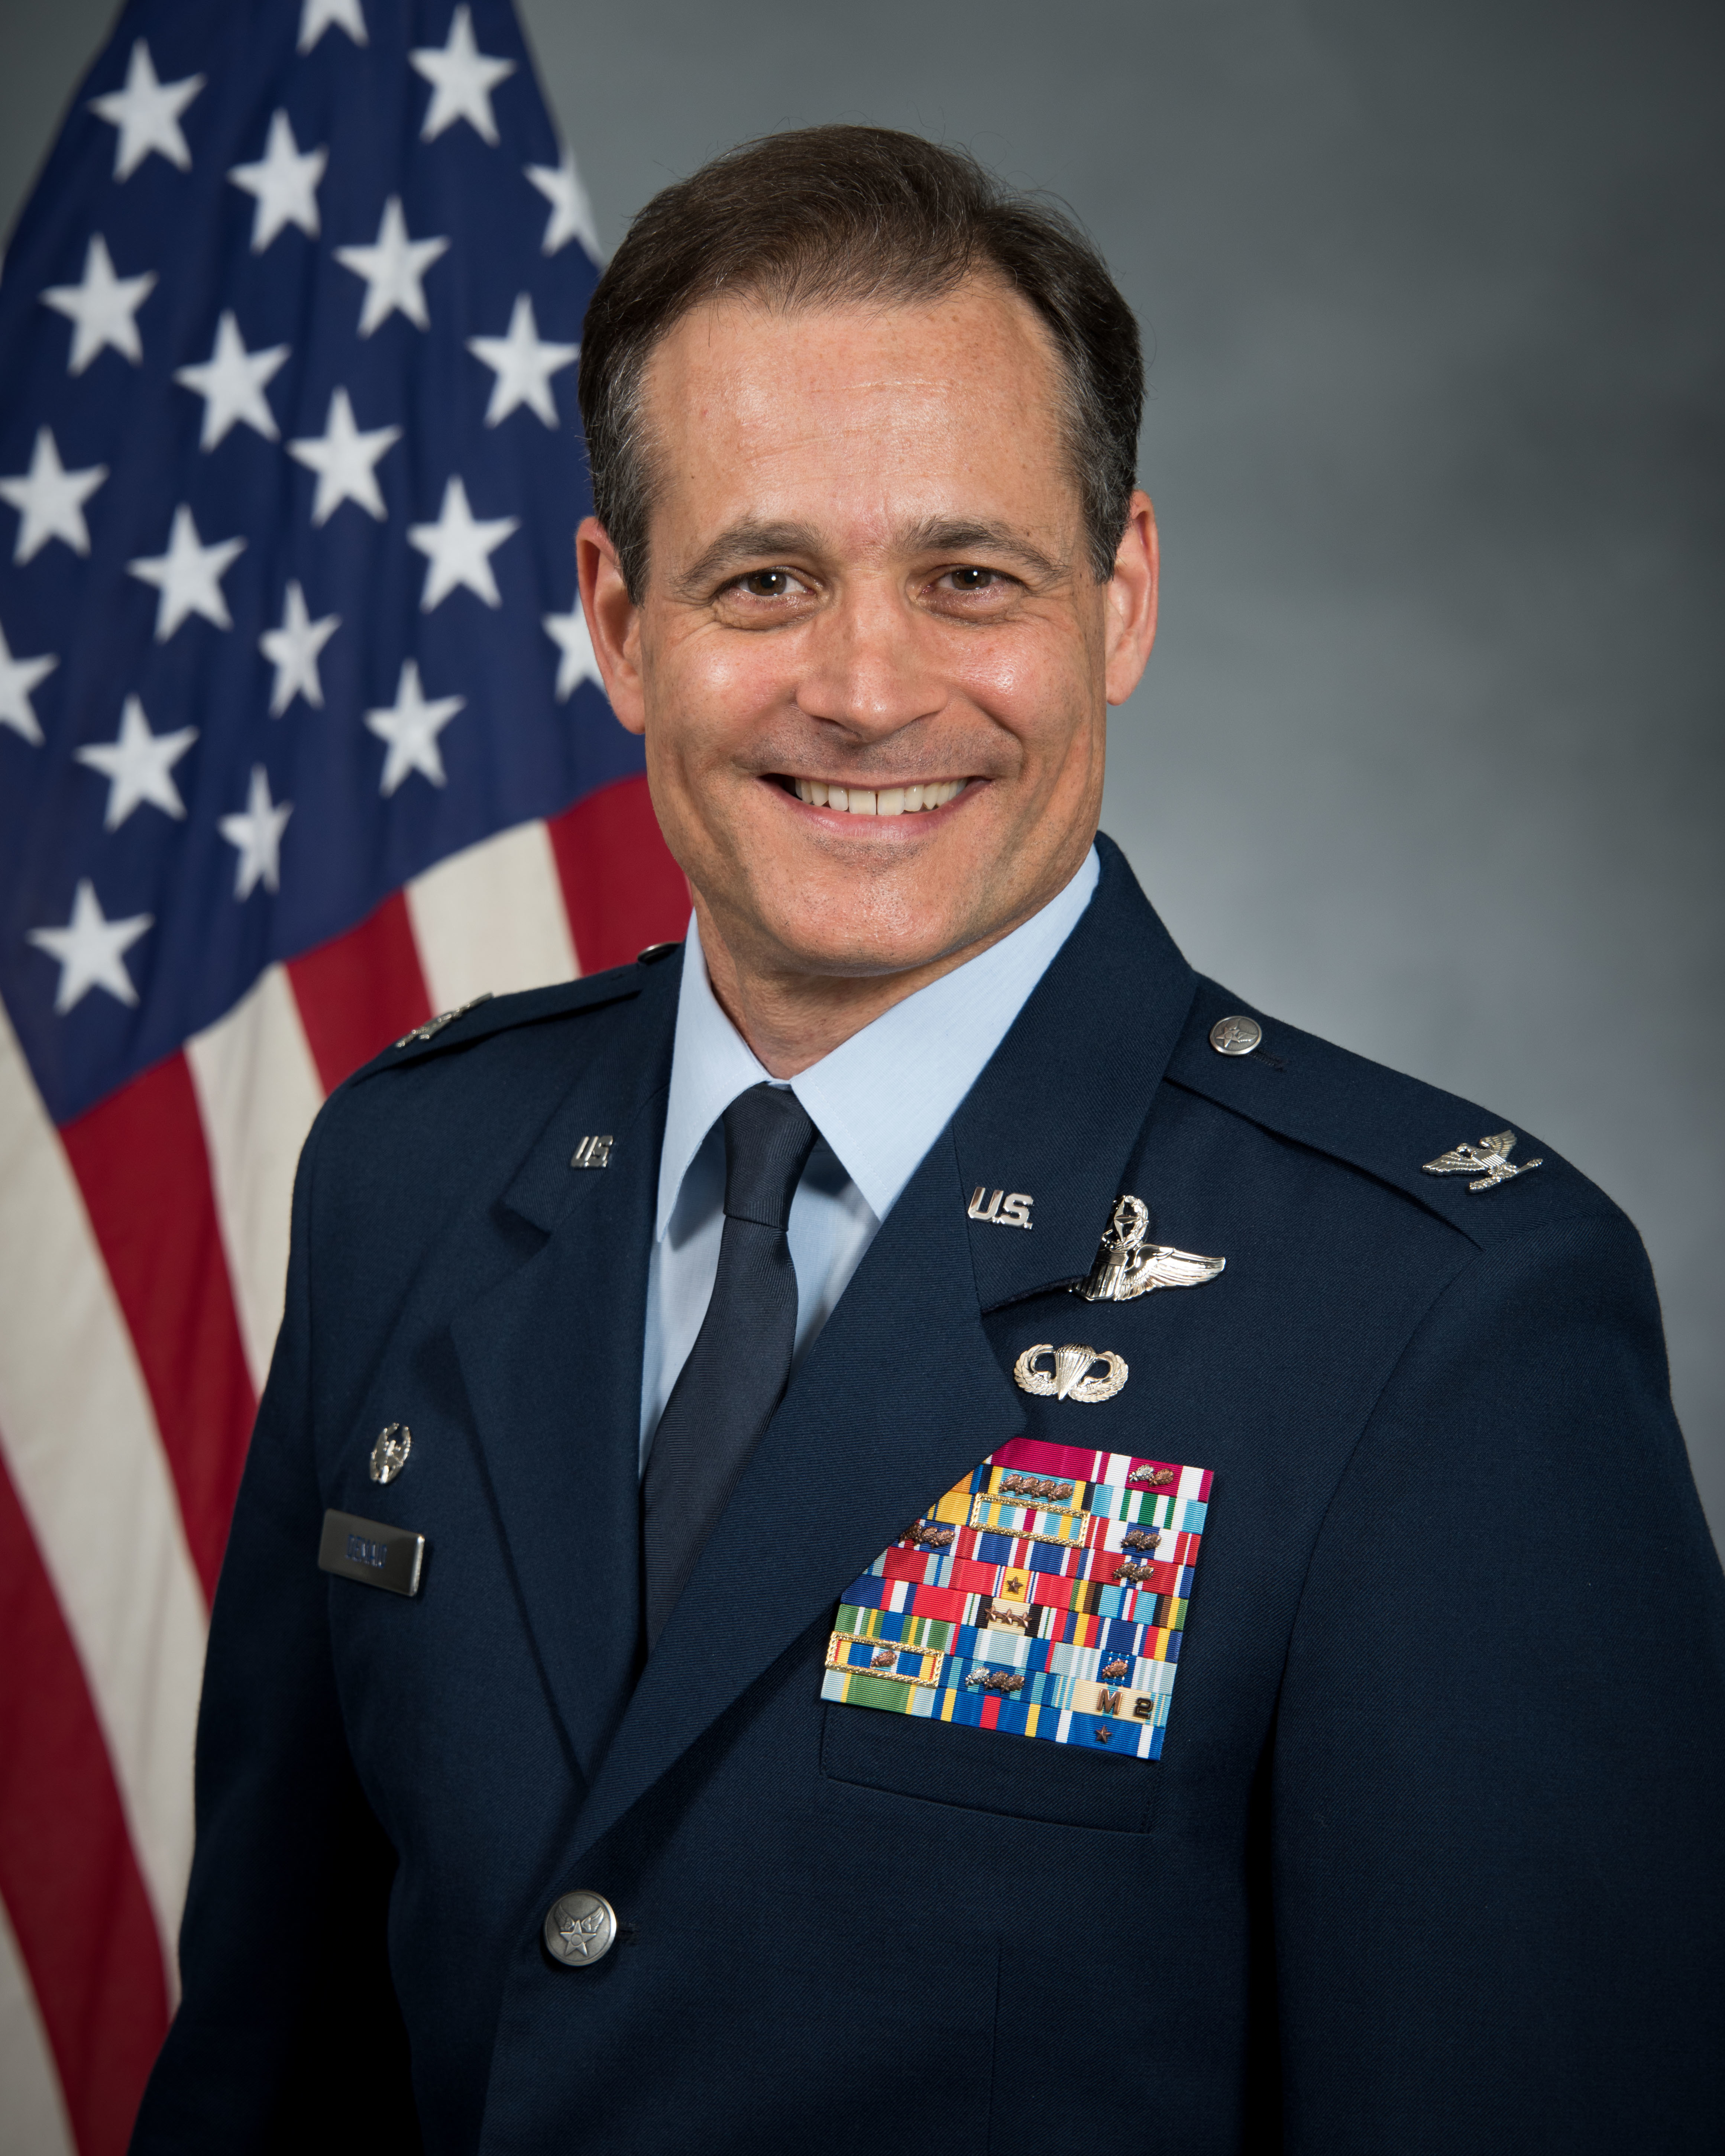 Official portrait of Col. Douglas DeMaio, Commander, 187th Fighter Wing.